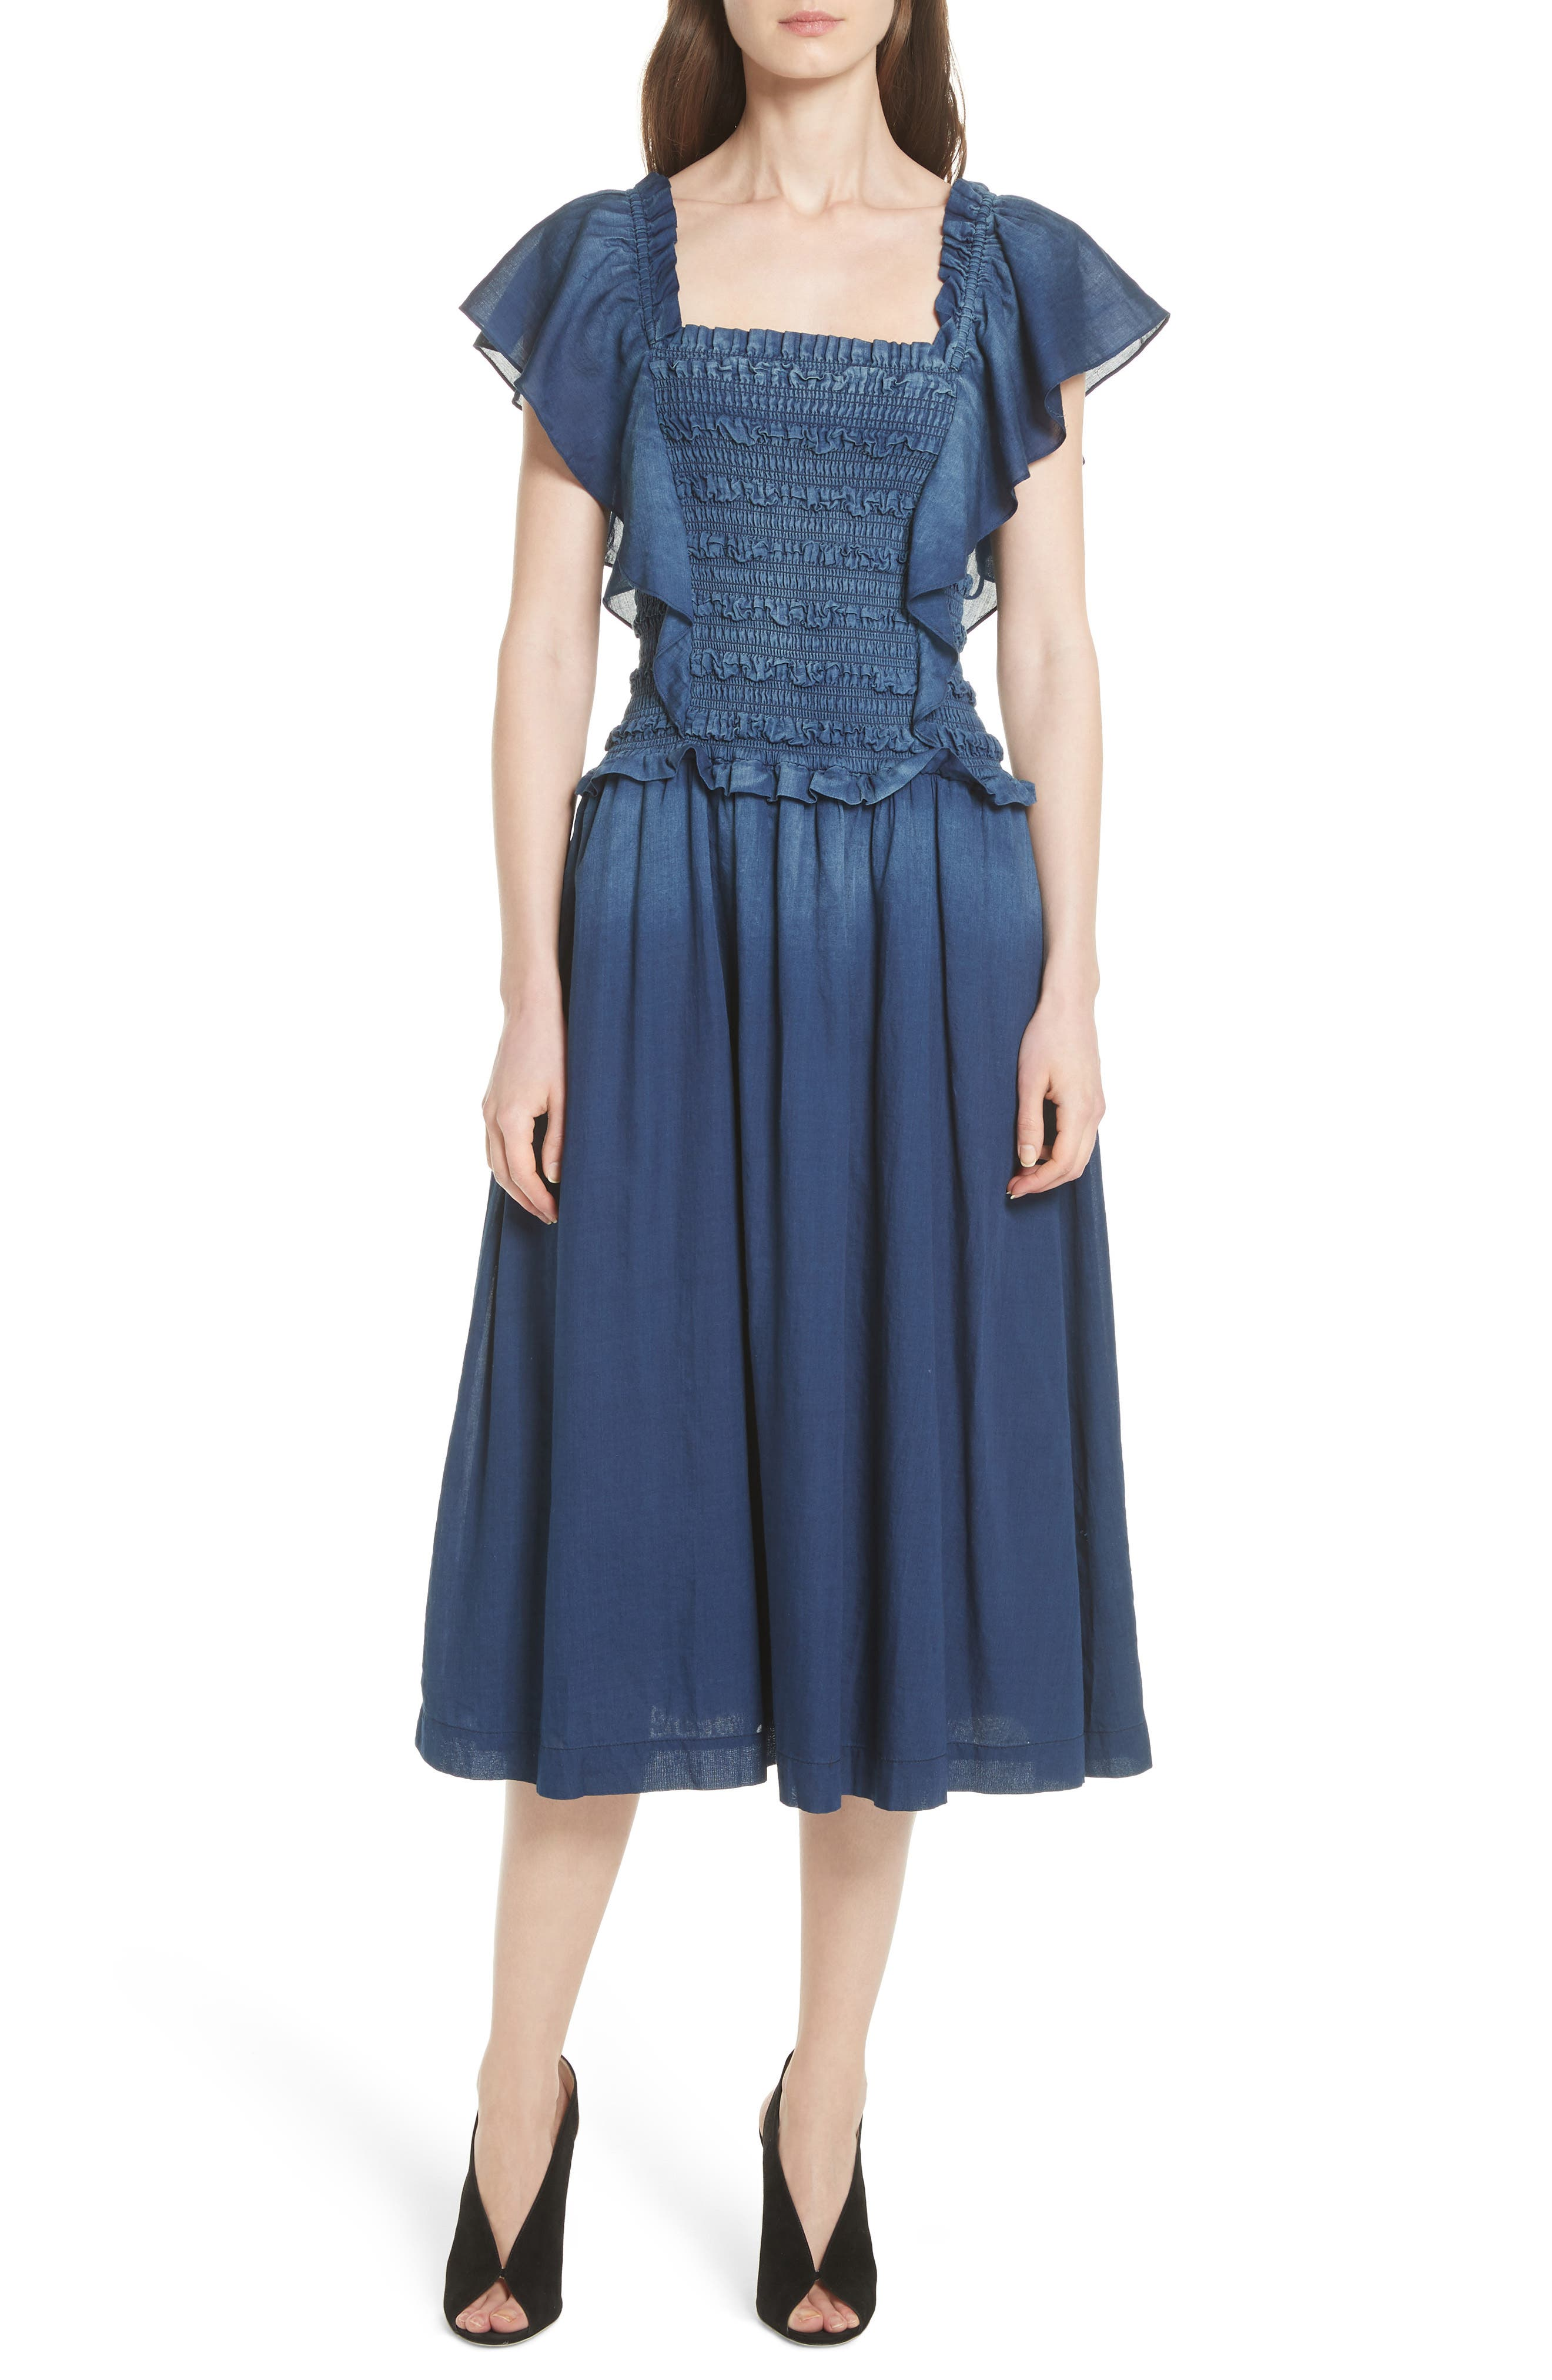 Alternate Image 1 Selected - La Vie Rebecca Taylor Smocked Tissue Denim Dress